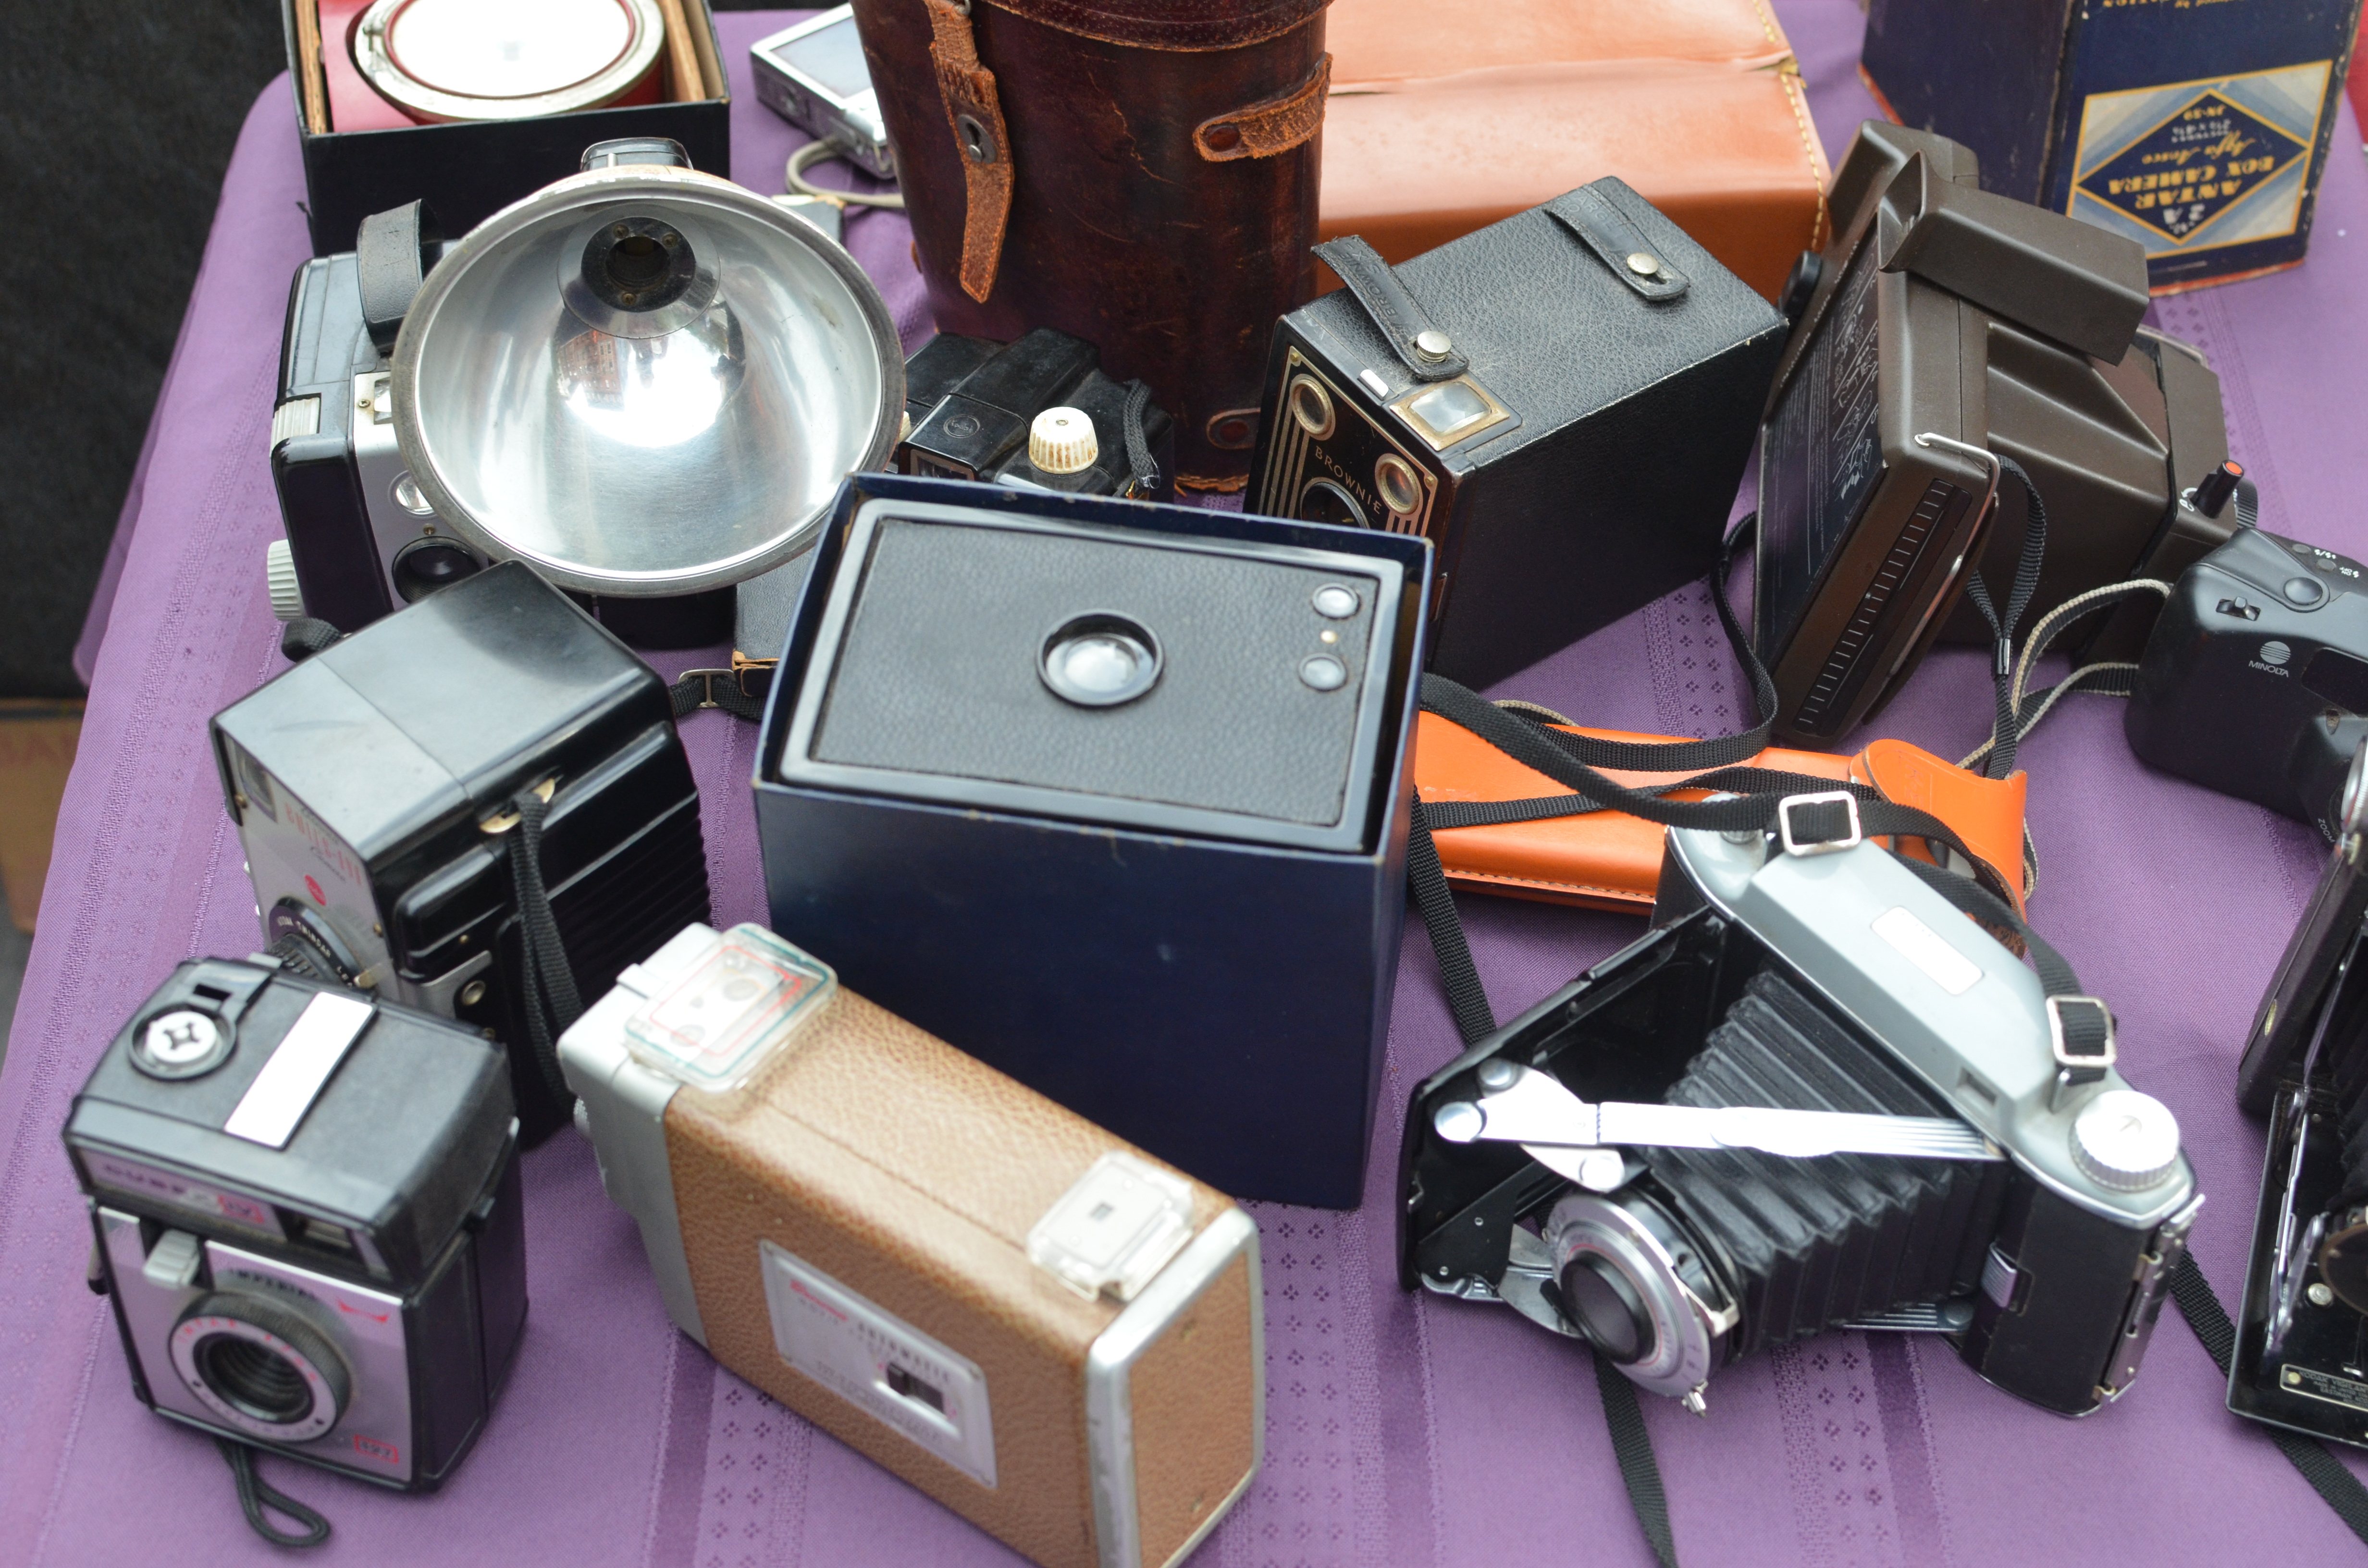 old cameras on a street vendor's table